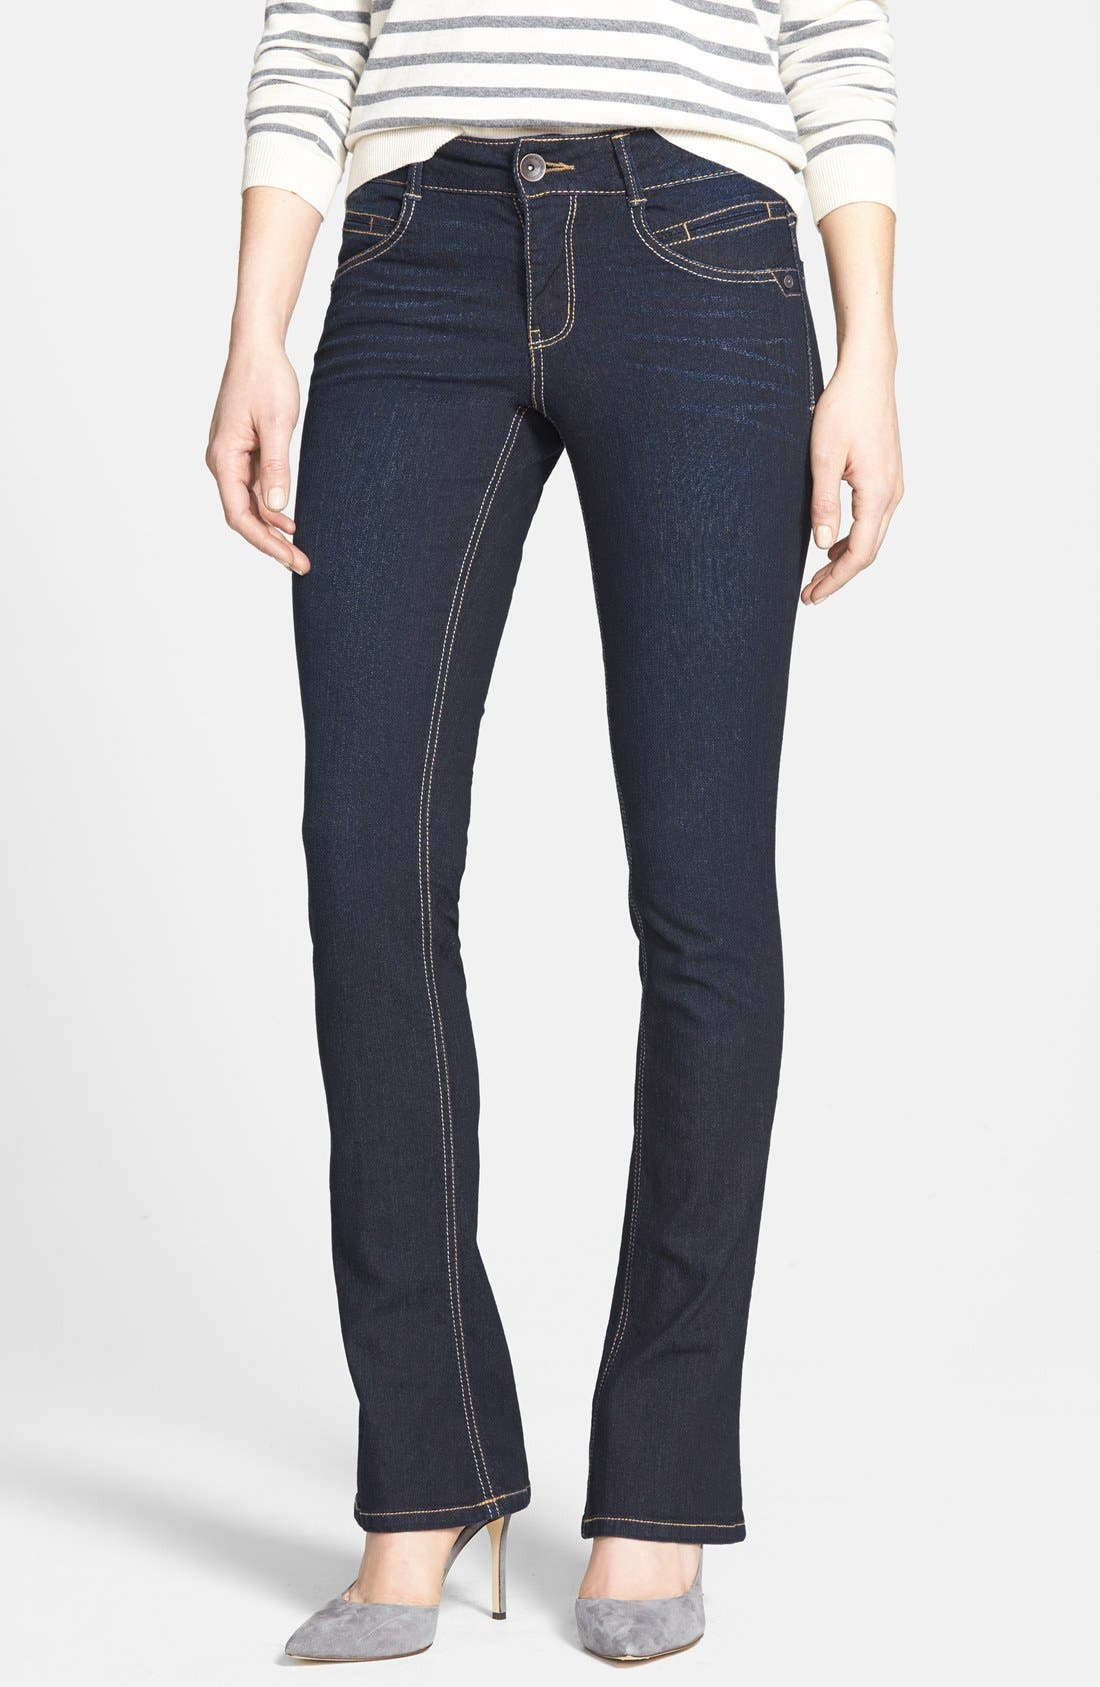 Alternate Image 1 Selected - Wit & Wisdom 'Itty Bitty' Bootcut Jeans (Blue) (Nordstrom Exclusive)